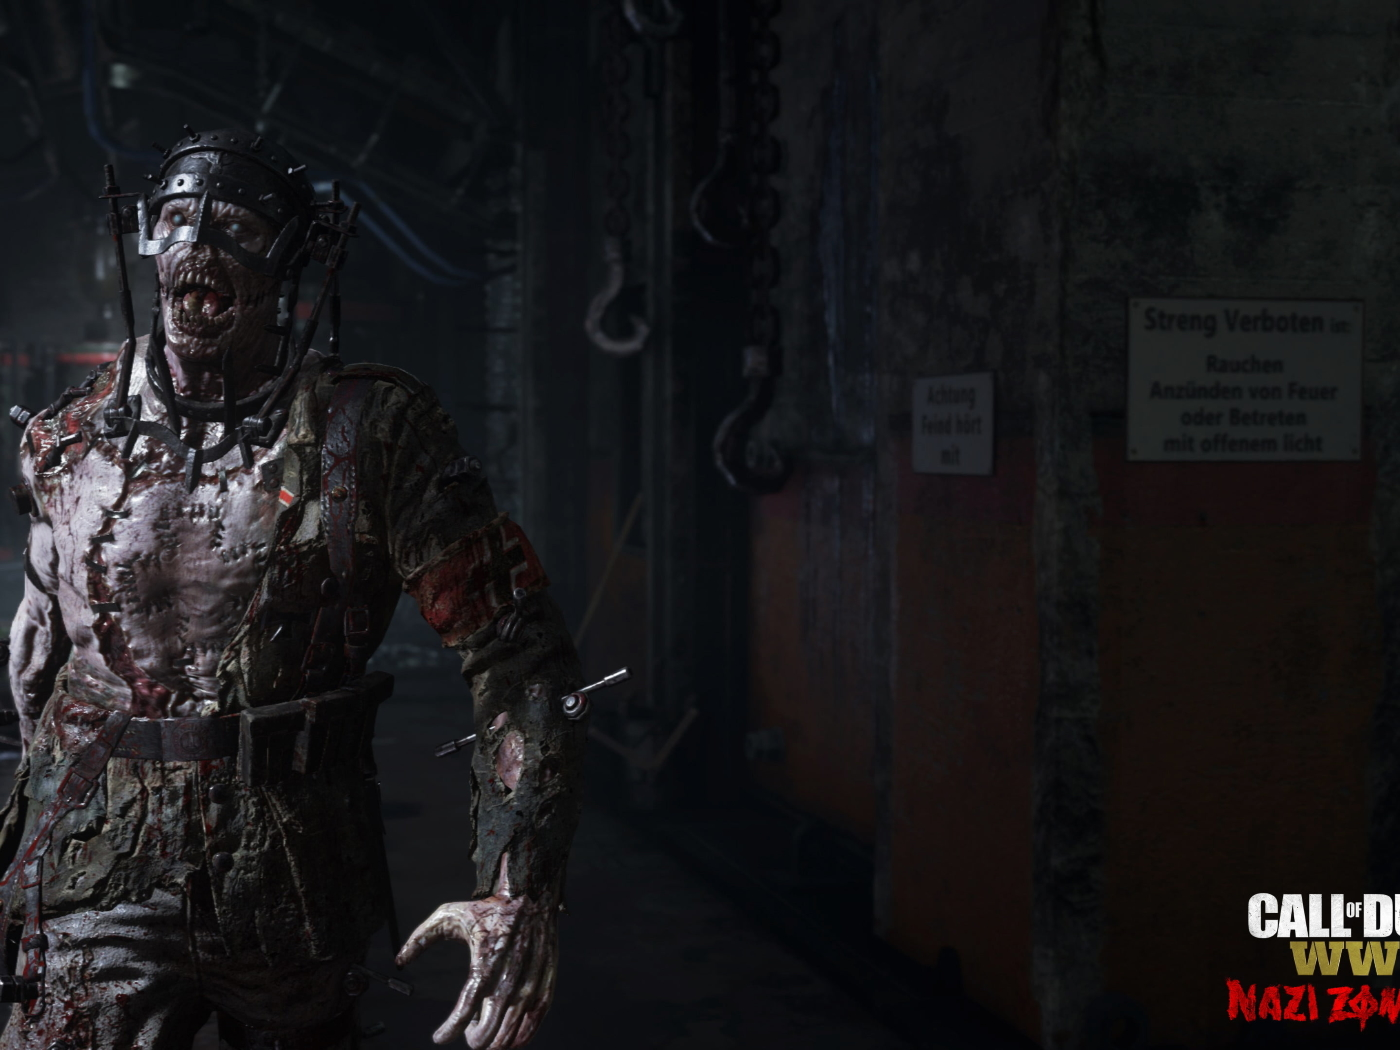 Call Of Duty Ww2 Zombies Wallpaper: Call Of Duty Wwii Nazi Zombies Gameplay, HD 4K Wallpaper